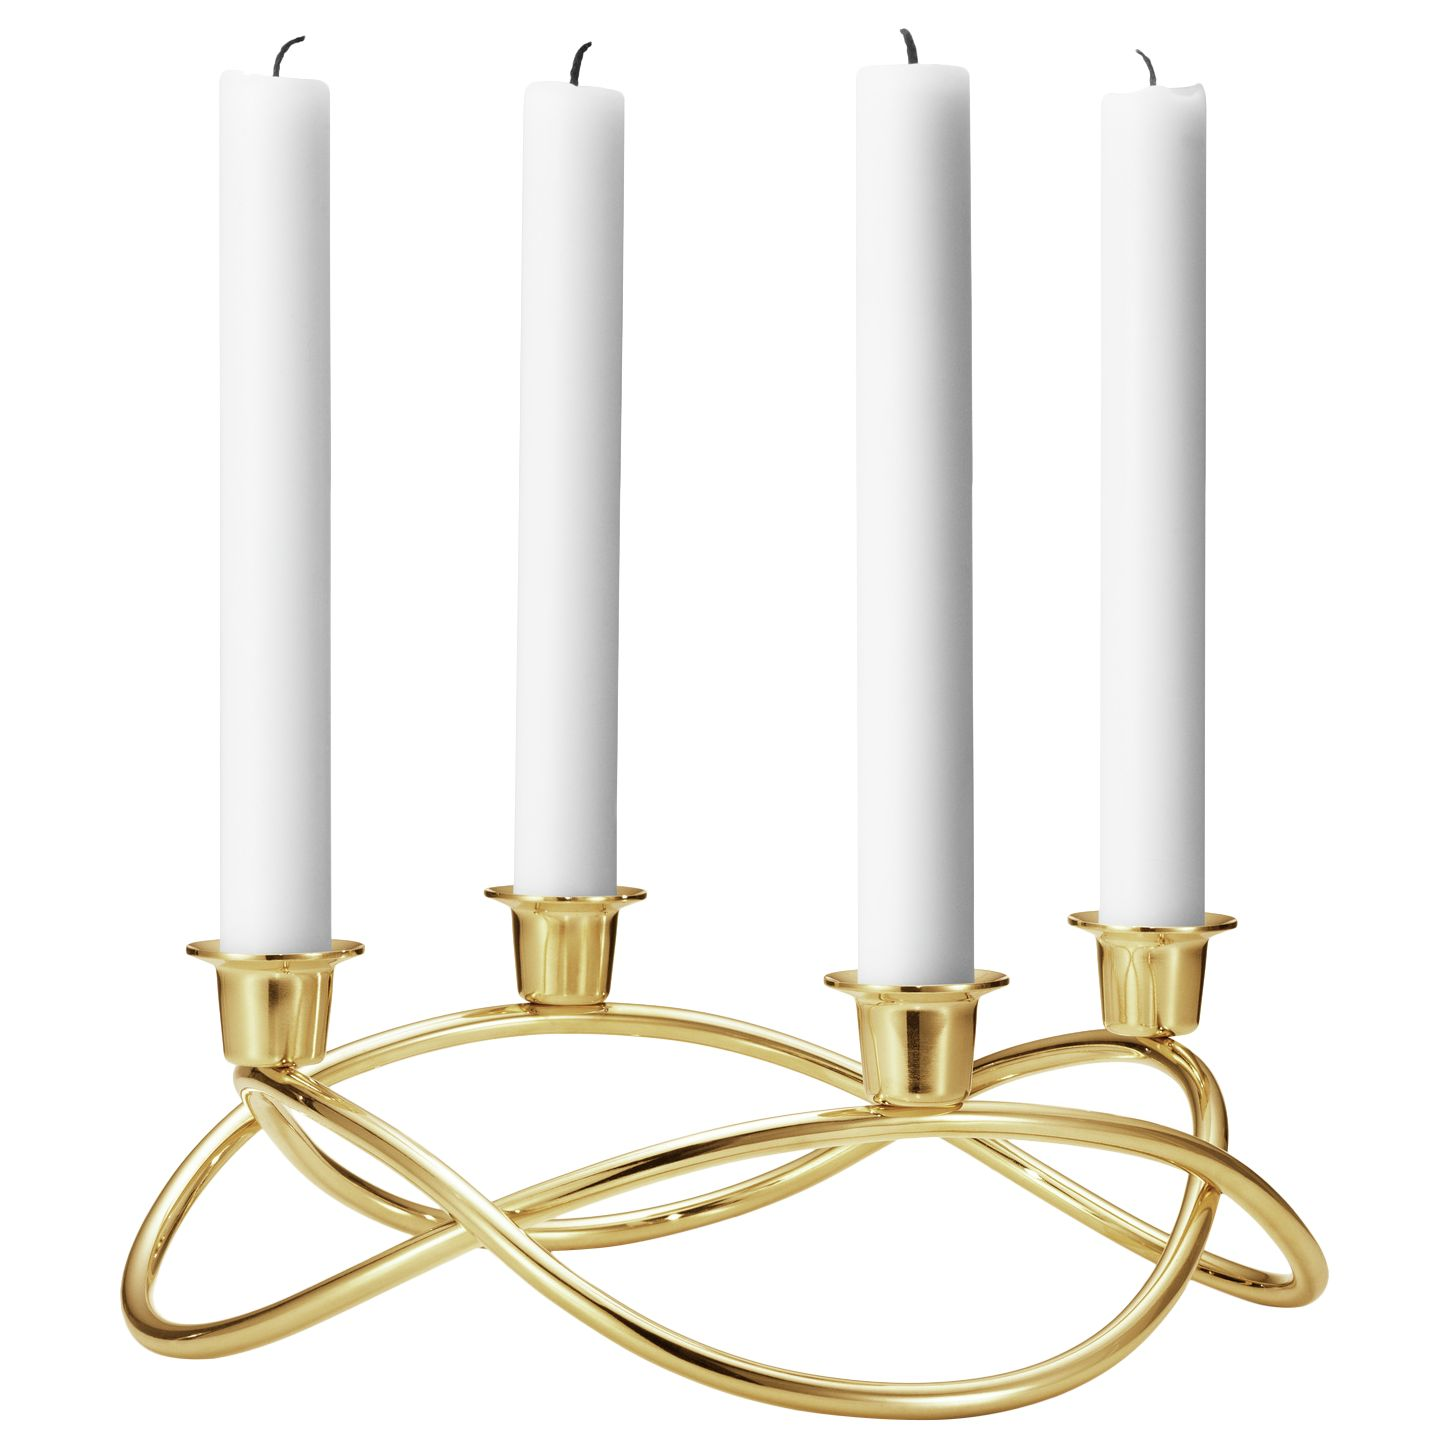 Georg Jensen Georg Jensen Season Gold Plated Candlestick Holder